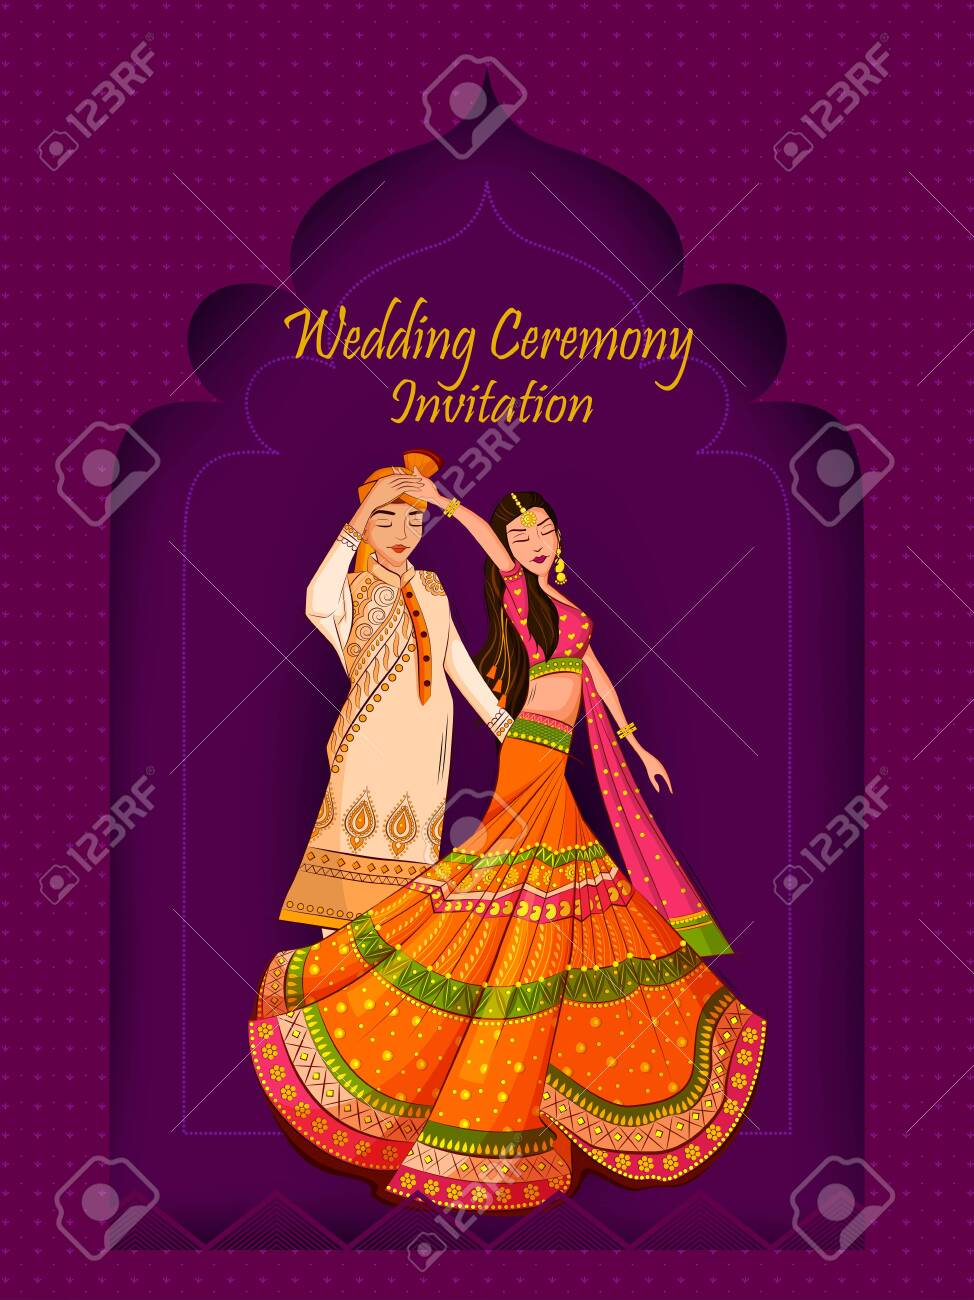 Indian Bride and Groom in ethnic dress Lengha and Serwani for wedding Day. Vector illustration - 128636695